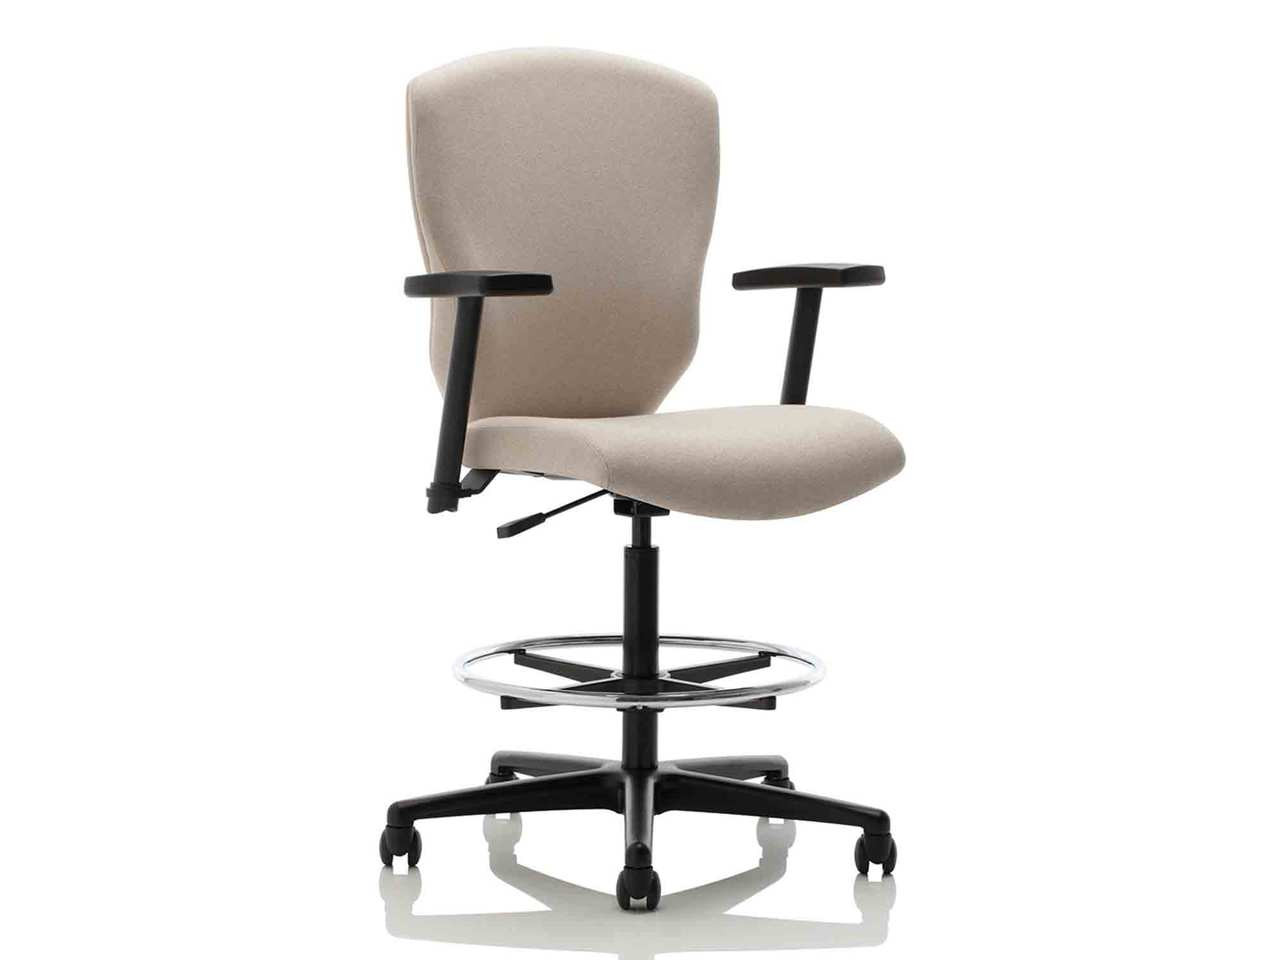 united chair medical stool slipcovers for lazy boy chairs sensato office furniture warehouse